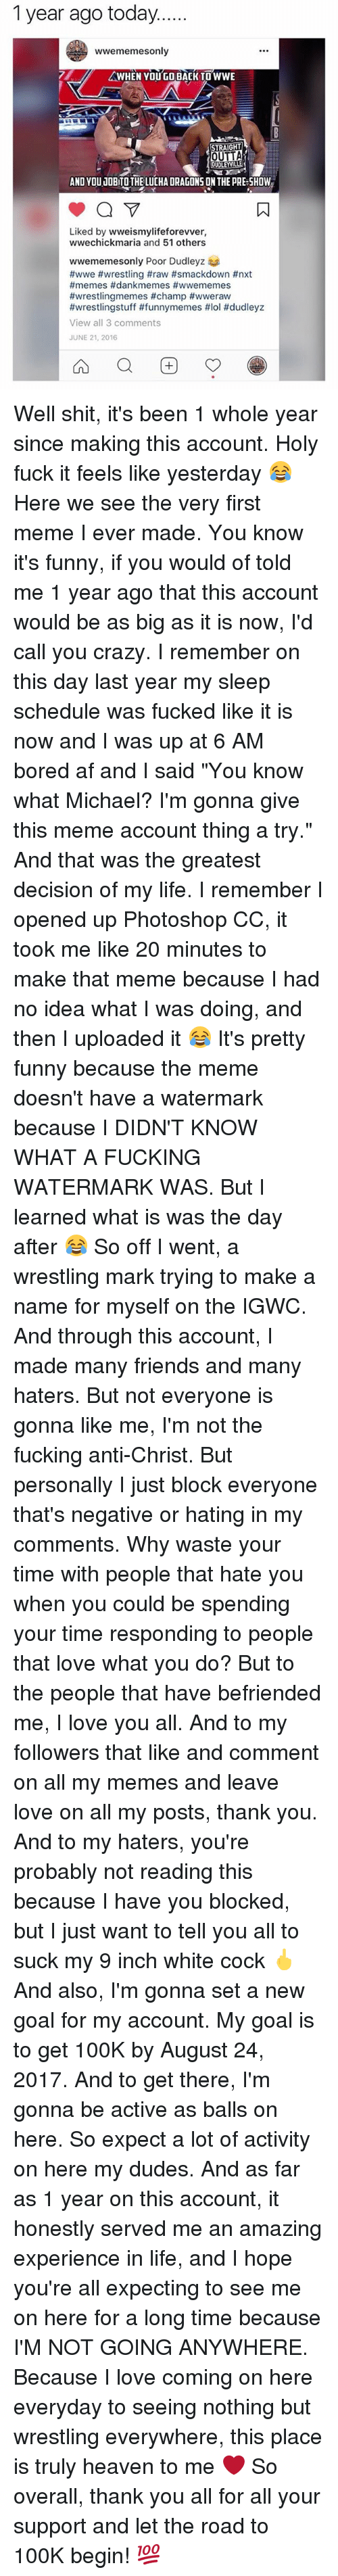 """Af, Bored, and Crazy: 1 year ago today......  wwememesonly  WHEN YOU GO BACK TO WWE  a STRAIGHT  OUTTA  DUOLEMML  AND YOU JOBITO THE LUCHA DRAGONS ON THE PRE SHOW  V  Liked by wweismylifeforevver,  wwechickmaria and 51 others  wwememesonly Poor Dudleyz  #wwe #wrestling #raw #smackdown #nxt  #memes f dankmemes #wwememes  #wrestlingmemes #champ #wweraw  #wrestlingstuff #funnymemes #lol #dudleyz  View all 3 comments  JUNE 21, 2016 Well shit, it's been 1 whole year since making this account. Holy fuck it feels like yesterday 😂 Here we see the very first meme I ever made. You know it's funny, if you would of told me 1 year ago that this account would be as big as it is now, I'd call you crazy. I remember on this day last year my sleep schedule was fucked like it is now and I was up at 6 AM bored af and I said """"You know what Michael? I'm gonna give this meme account thing a try."""" And that was the greatest decision of my life. I remember I opened up Photoshop CC, it took me like 20 minutes to make that meme because I had no idea what I was doing, and then I uploaded it 😂 It's pretty funny because the meme doesn't have a watermark because I DIDN'T KNOW WHAT A FUCKING WATERMARK WAS. But I learned what is was the day after 😂 So off I went, a wrestling mark trying to make a name for myself on the IGWC. And through this account, I made many friends and many haters. But not everyone is gonna like me, I'm not the fucking anti-Christ. But personally I just block everyone that's negative or hating in my comments. Why waste your time with people that hate you when you could be spending your time responding to people that love what you do? But to the people that have befriended me, I love you all. And to my followers that like and comment on all my memes and leave love on all my posts, thank you. And to my haters, you're probably not reading this because I have you blocked, but I just want to tell you all to suck my 9 inch white cock 🖕 And also, I'm gonna set a new goal for my accoun"""